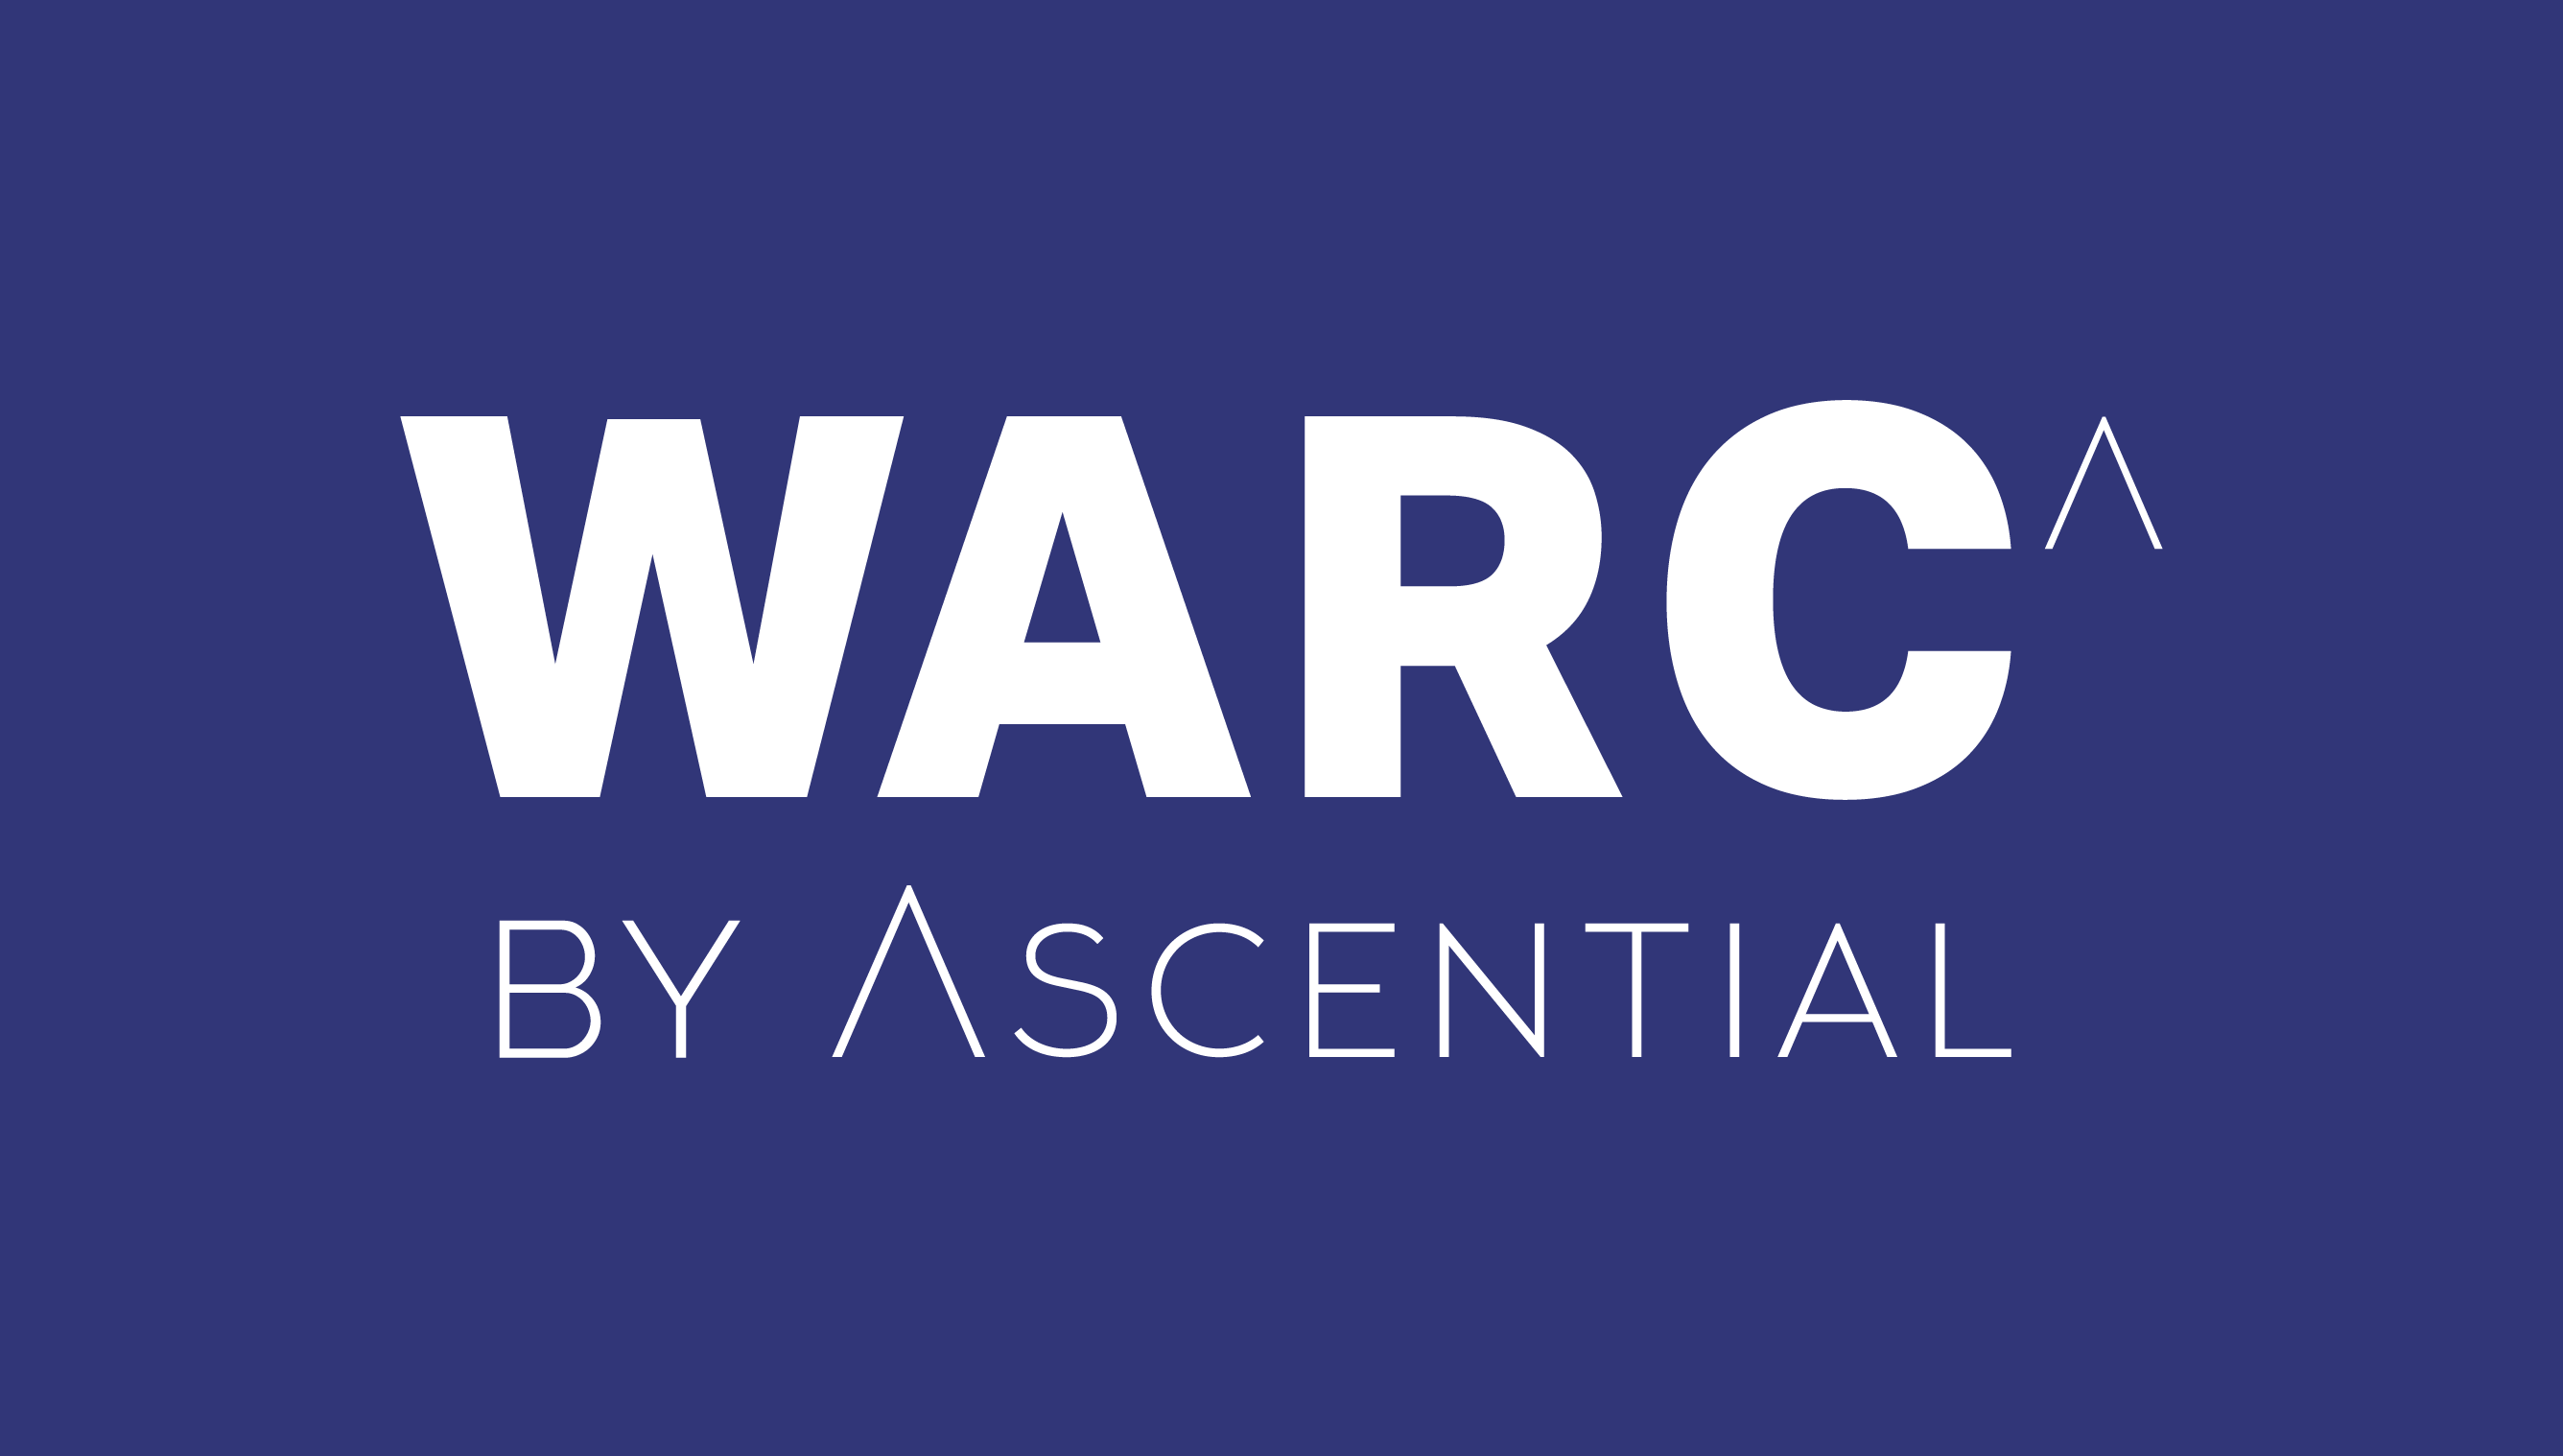 WARC light on blue